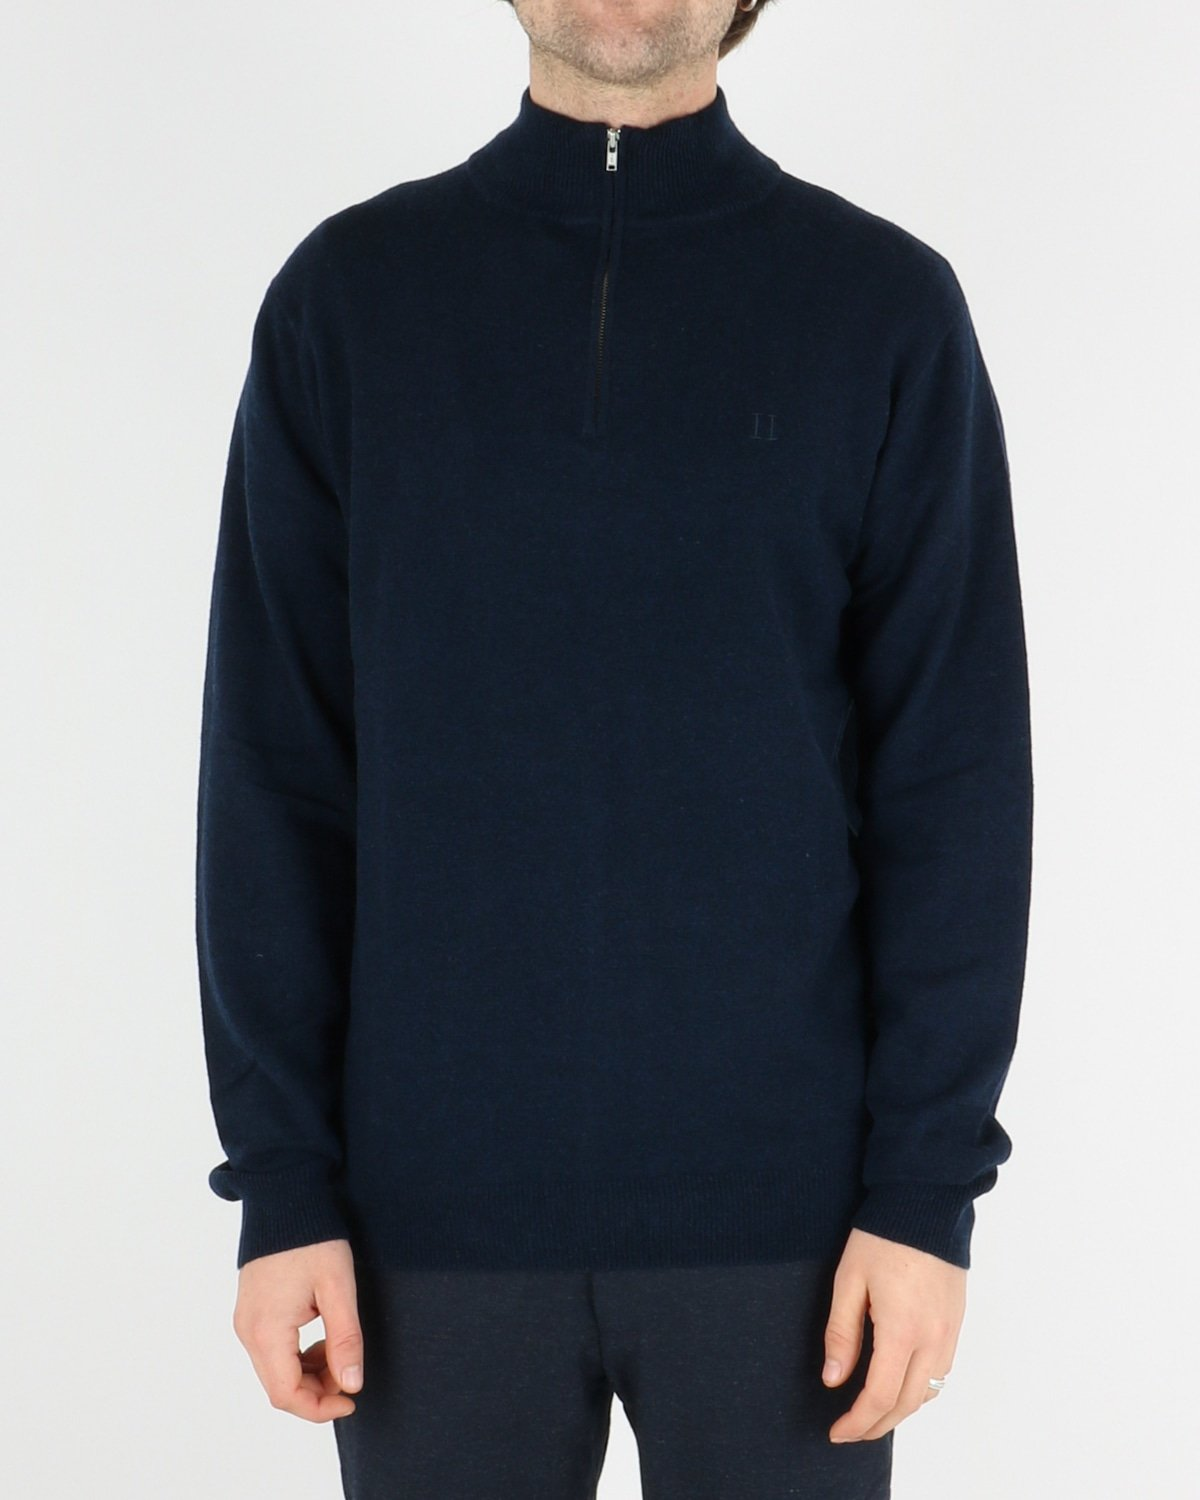 les deux_cashmerino zipper knit_dark navy_1_4